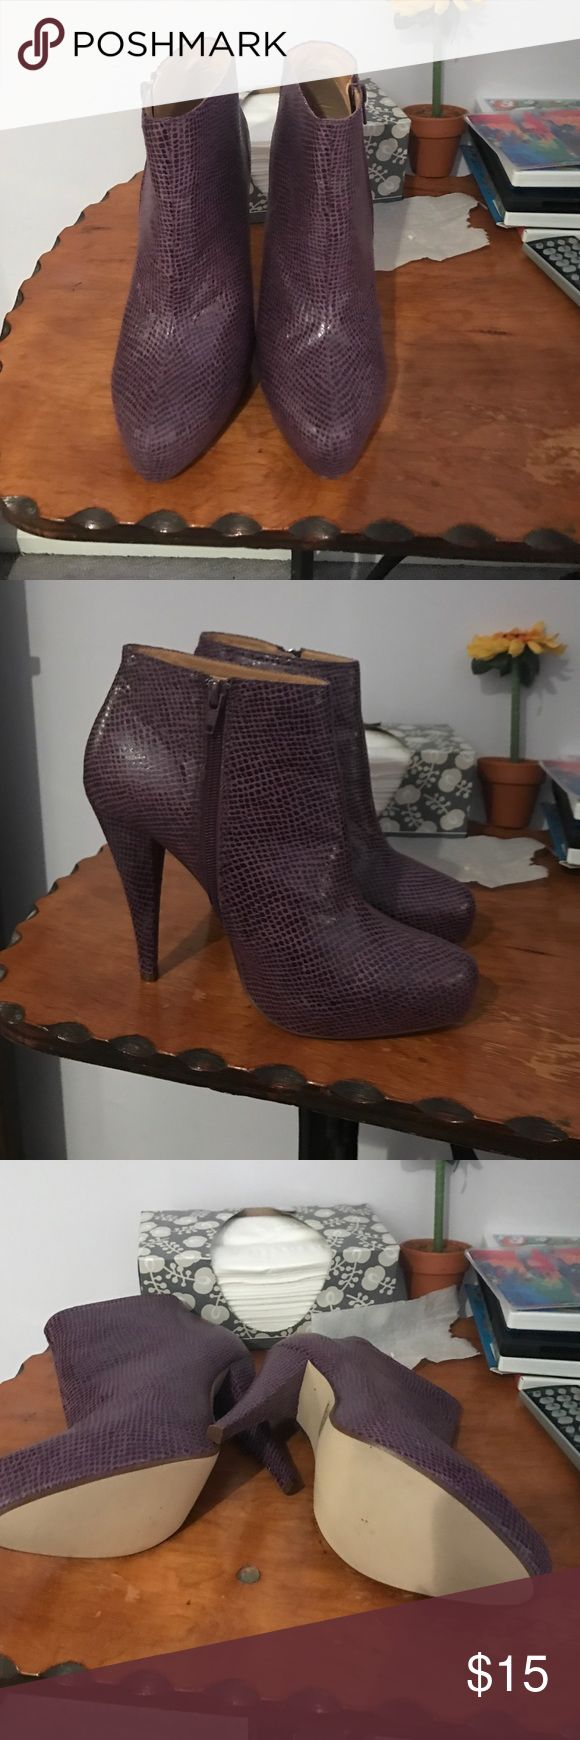 Gorgeous purple Enigma boots These are re-posh but I never wore them bc they didn't fit n they arrived in basically brand new condition so I know they will find new owner as excited as I was when I first saw them. - feel free to make offer! Enigma Shoes Ankle Boots & Booties